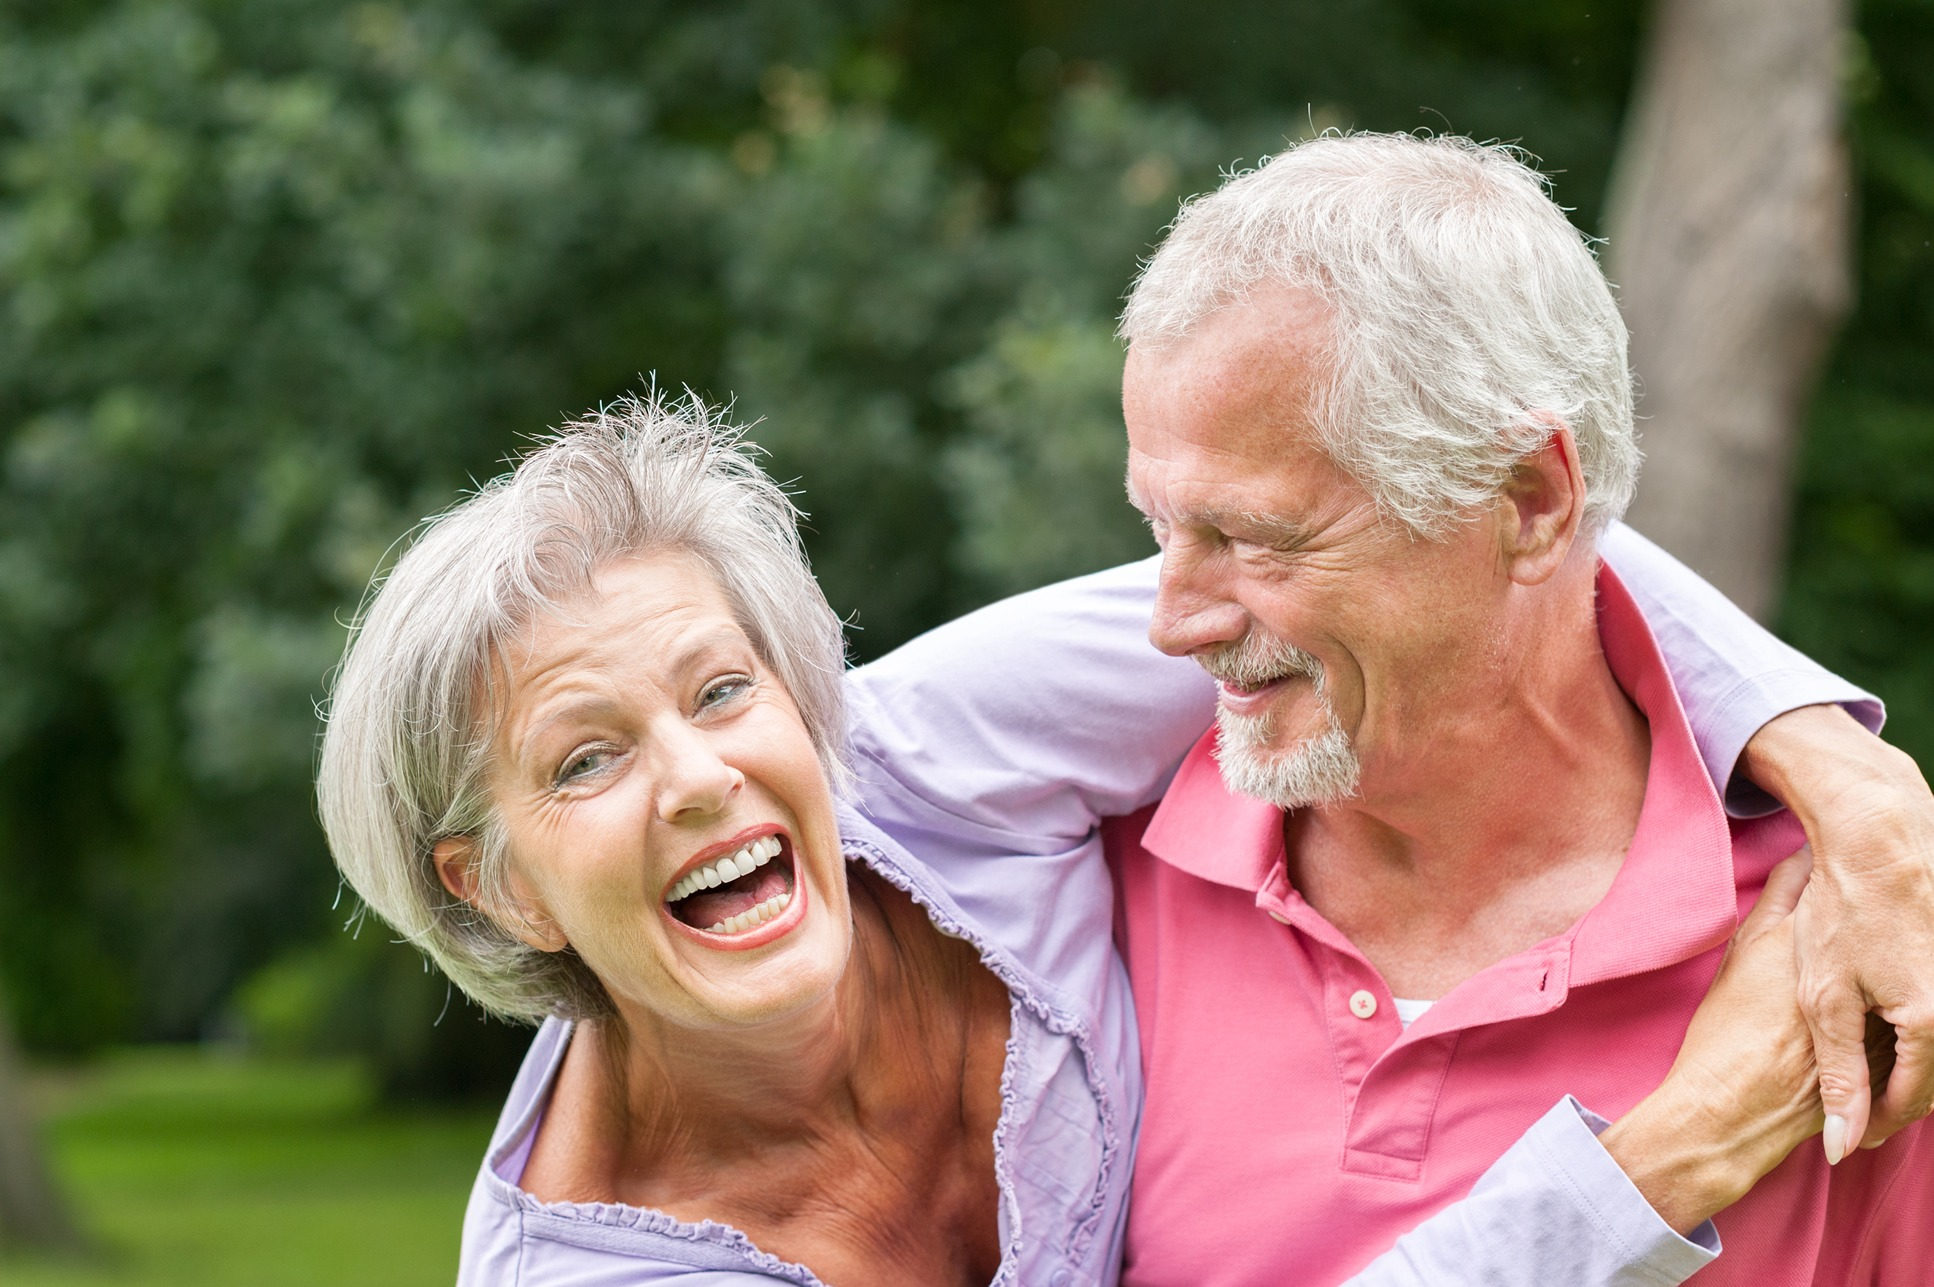 dating tips for over 60 Dating tips for women over 60 february 18, 2014 at 10:00 am as a woman over 60, it is a difficult issue to date with somebody, because you have little number of men to choose from.